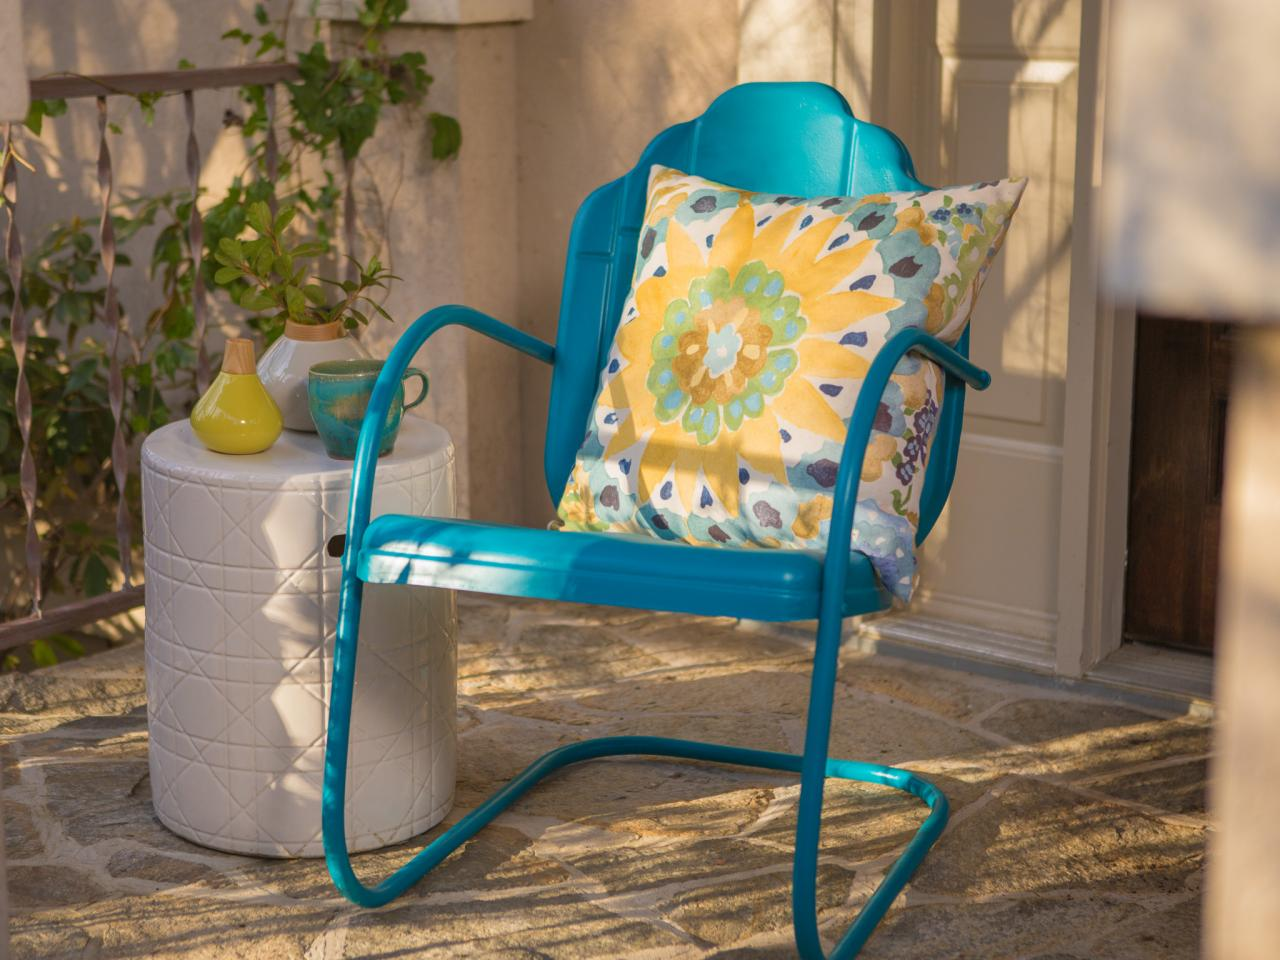 Metal outdoor furniture - You Can Rescue Rusty Metal Furniture From The Scrap Heap Just Get Rid Of That Rust And Brighten It Up With A Fresh Coat Of Outdoor Paint